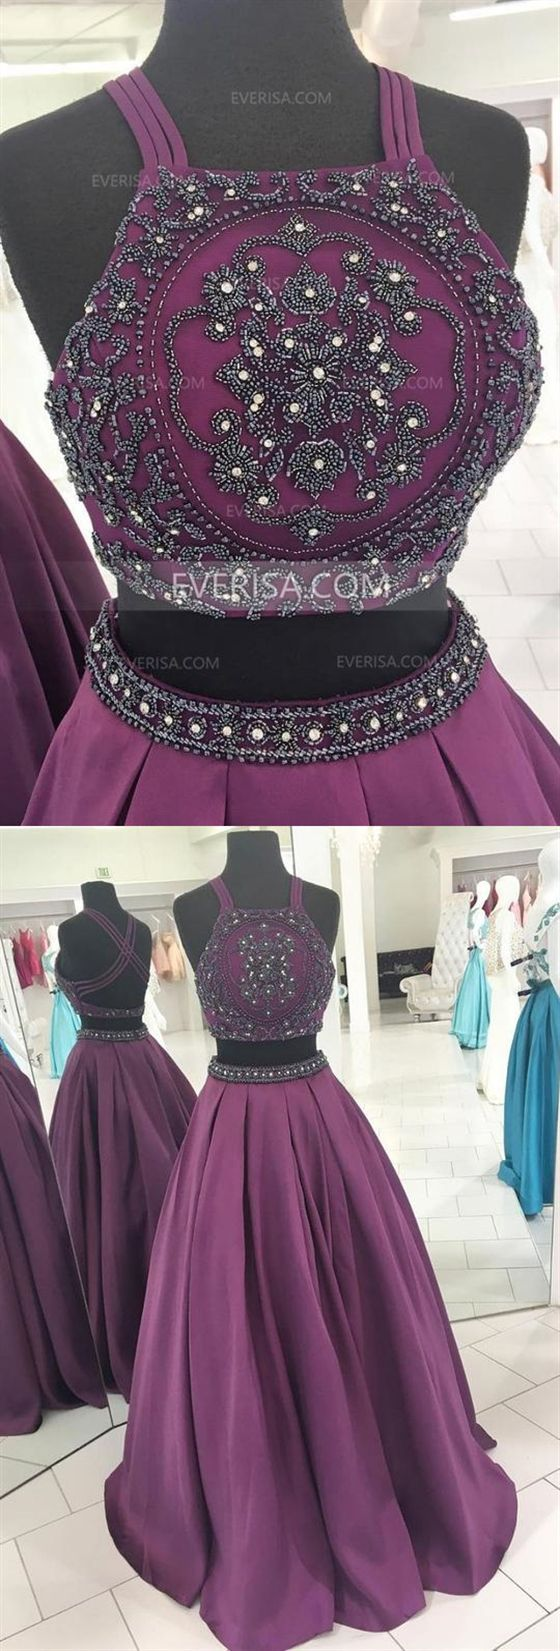 Purple Two Pieces Cross Back Beaded Prom Dresses Cheap Evening Dresses 1